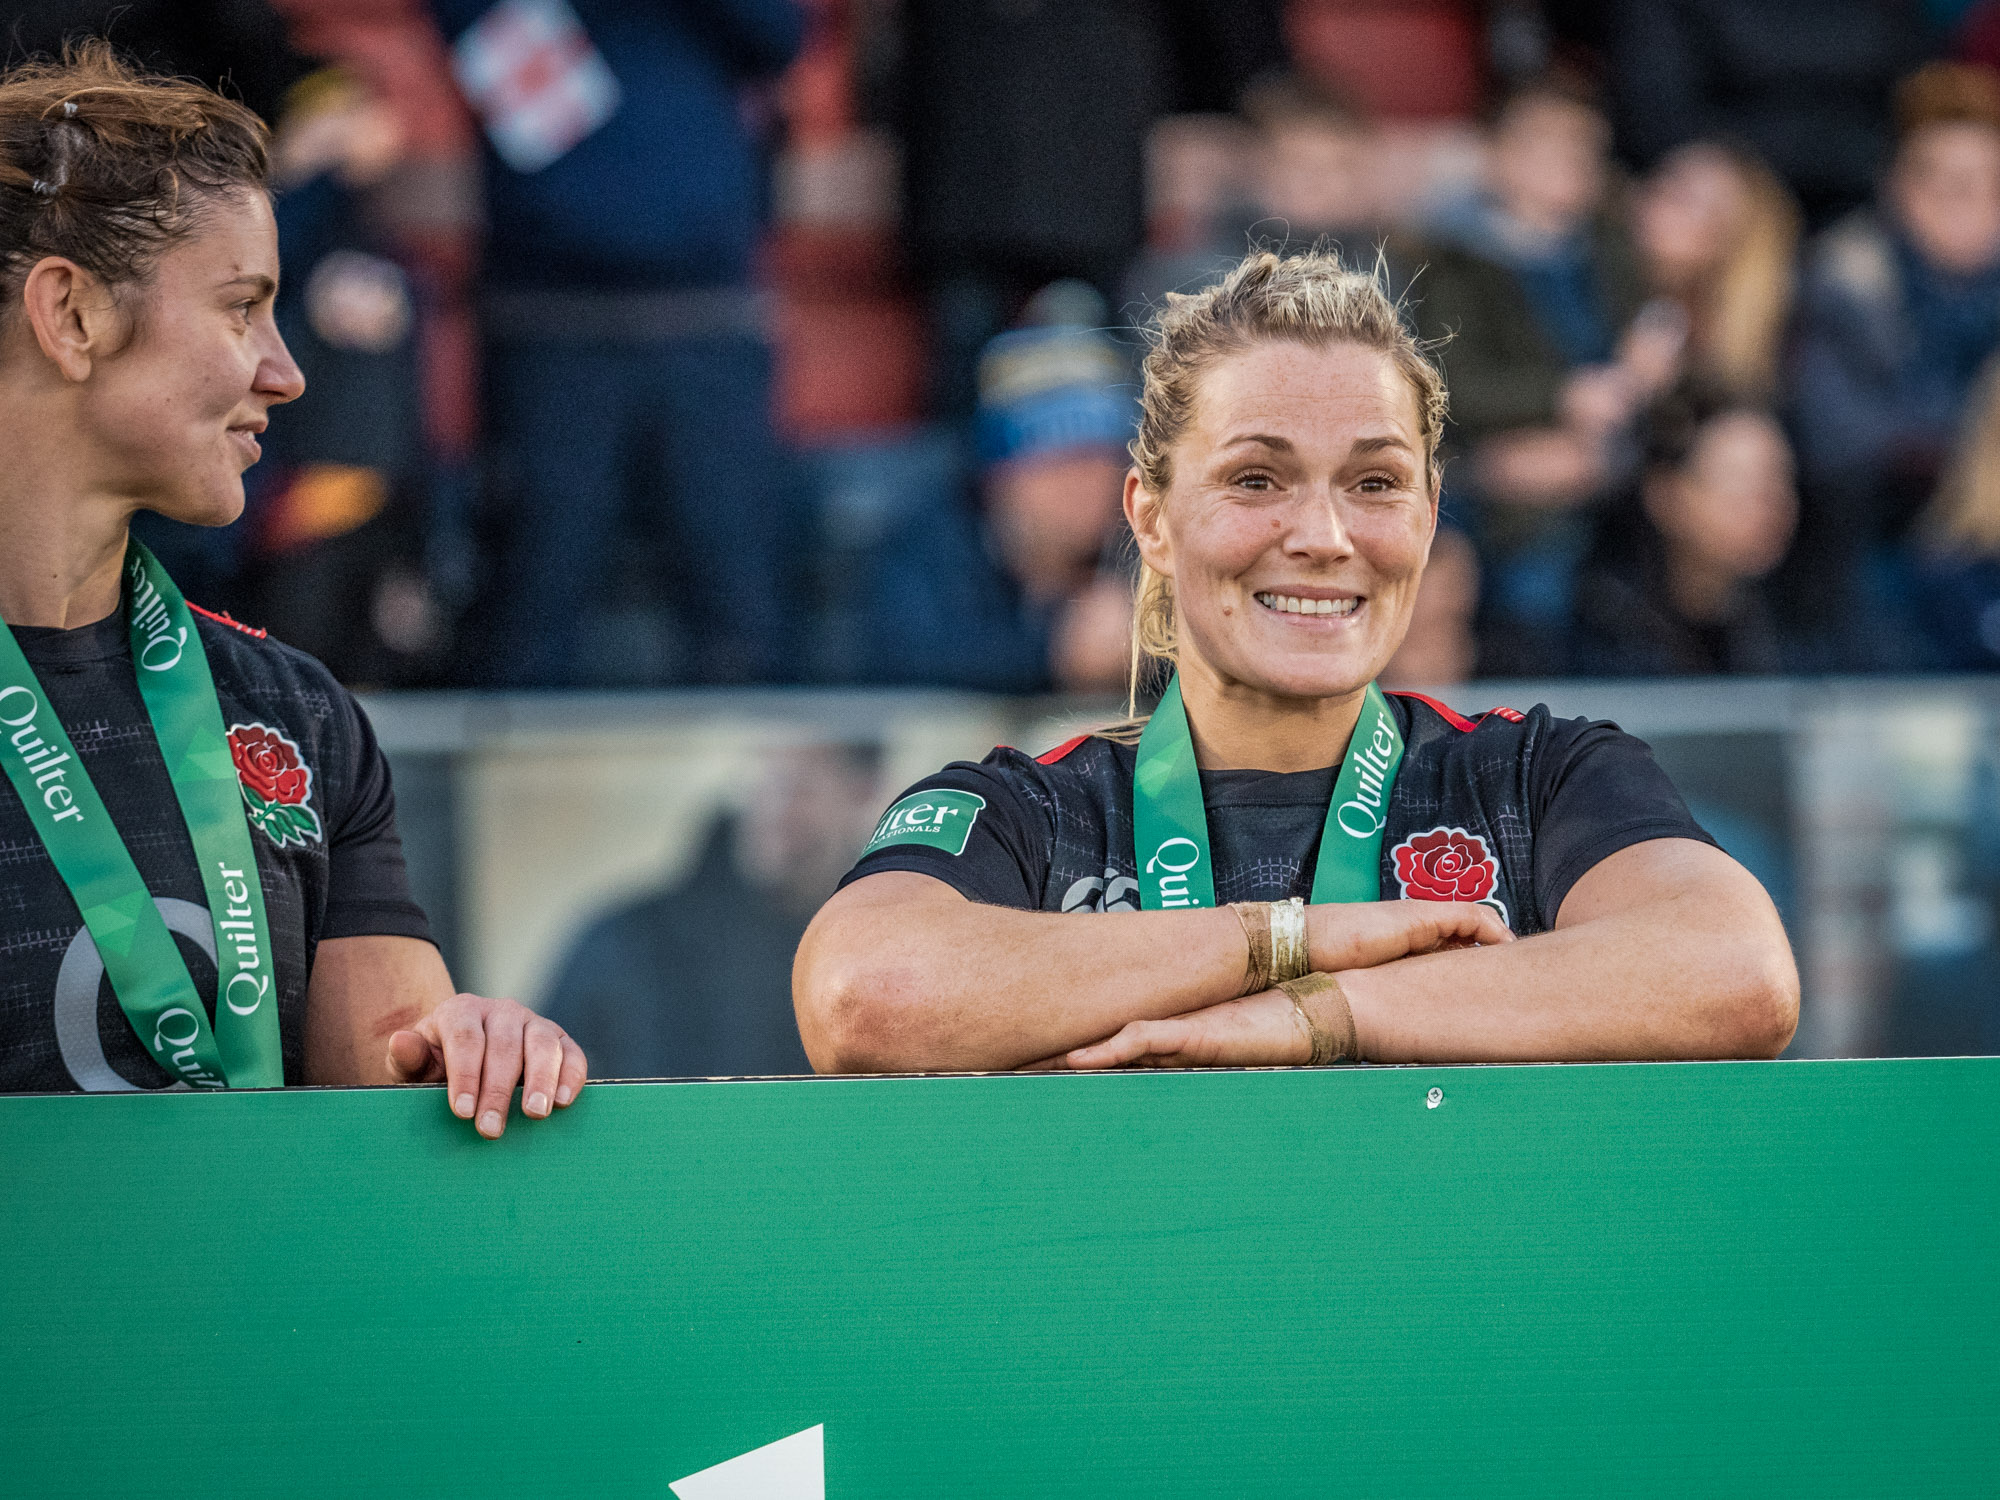 England's Sarah Hunter (left) and Rachael Burford happily wait for the post-match photos